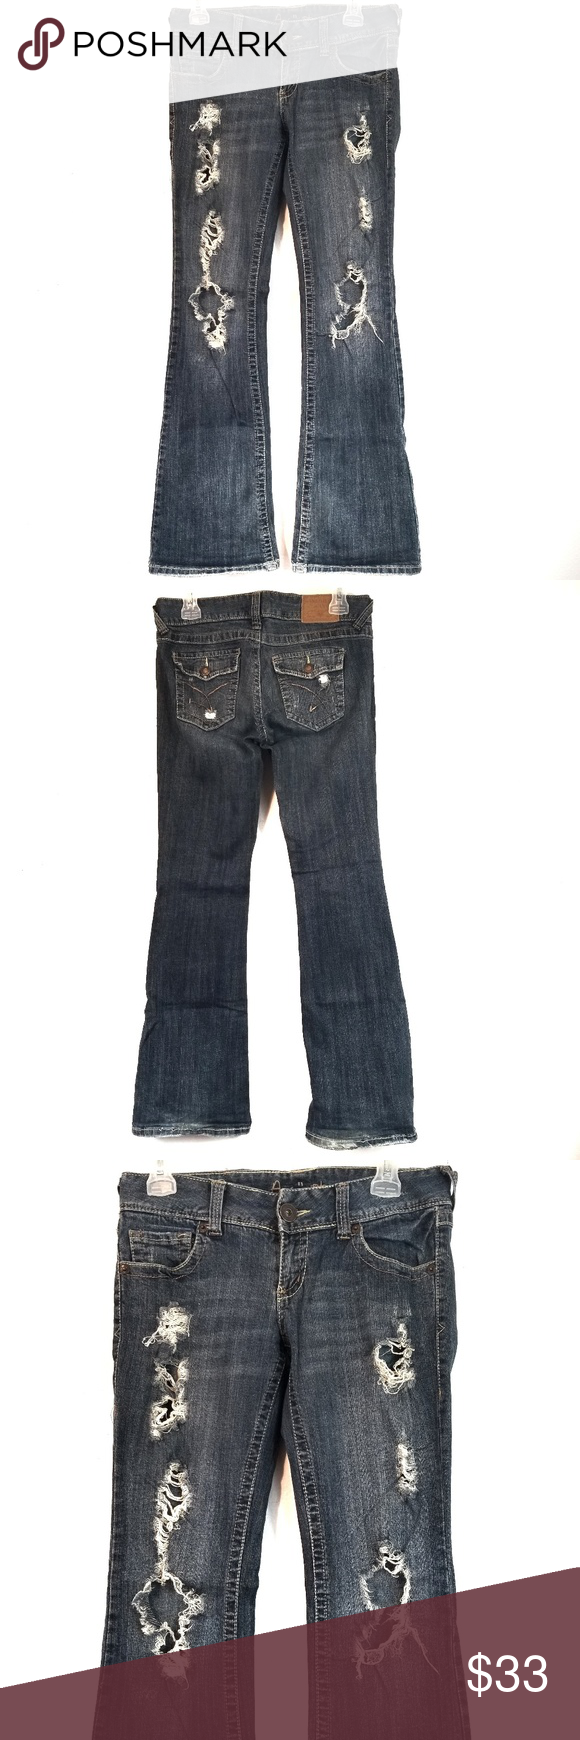 9e7c81d25f87e I just added this listing on Poshmark  Amethyst Distressed Flare Jeans Dark  Wash Size 5.  shopmycloset  poshmark  fashion  shopping  style  forsale ...